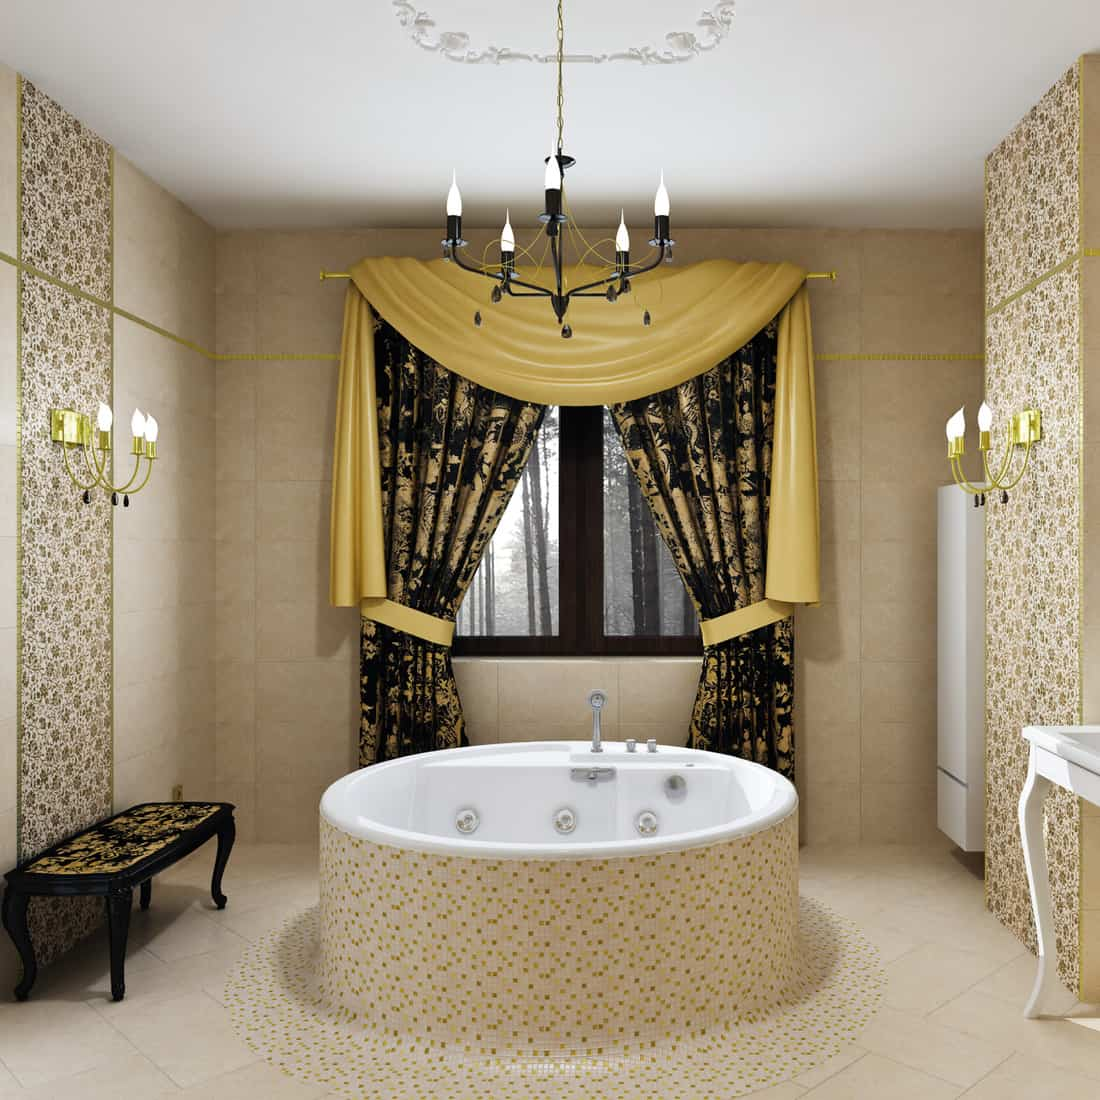 luxury bathroom with candle sconce and chandelier